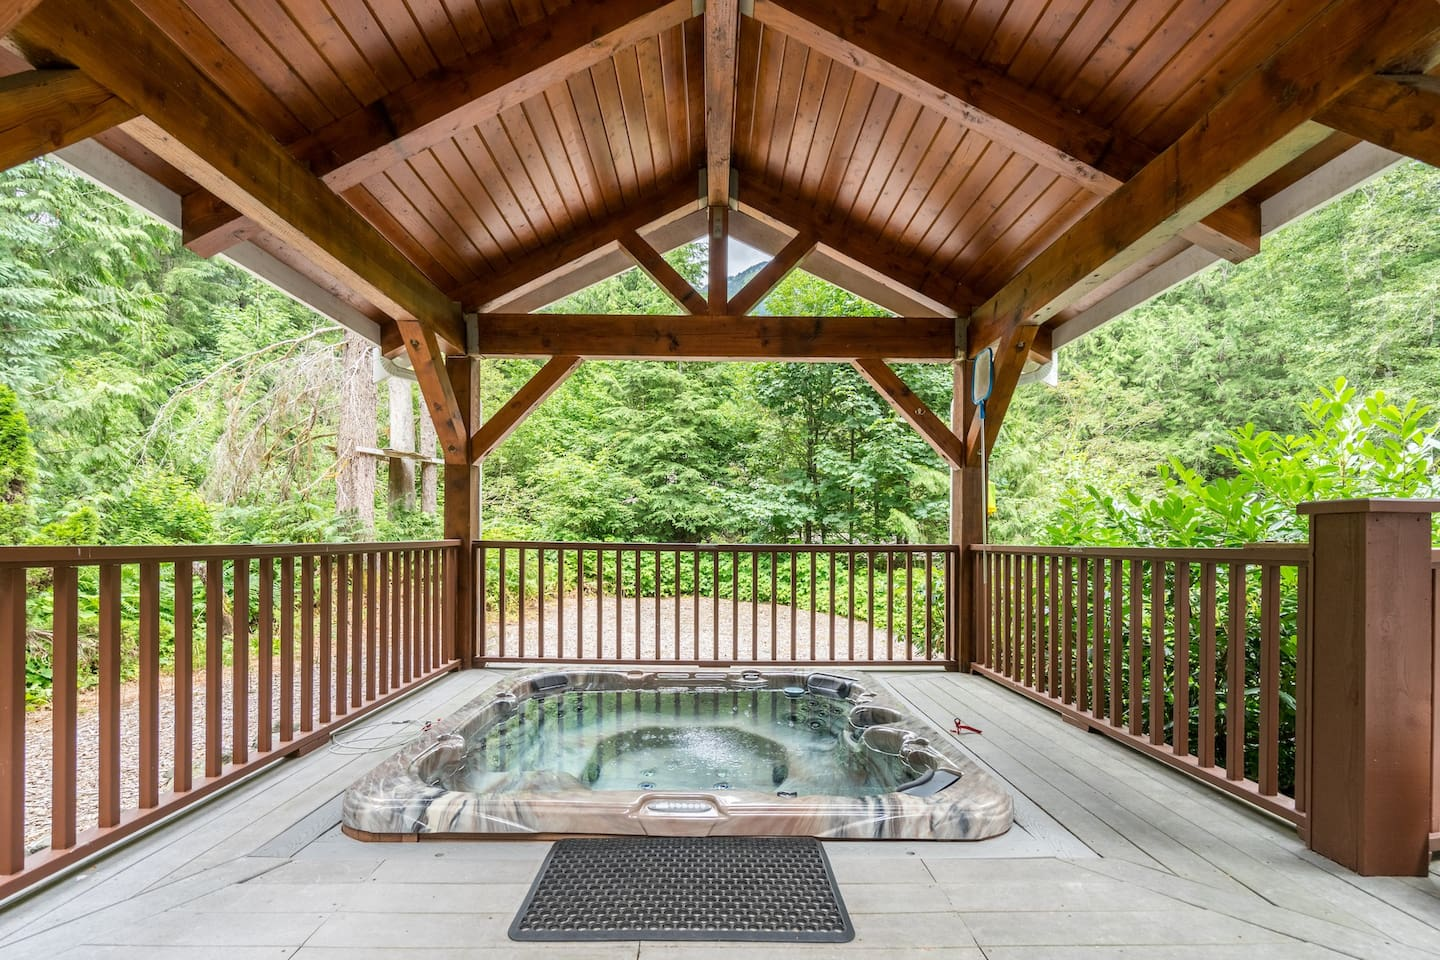 Soak in our 7 seater luxury Dimension 1 hot tub under our gazebo.